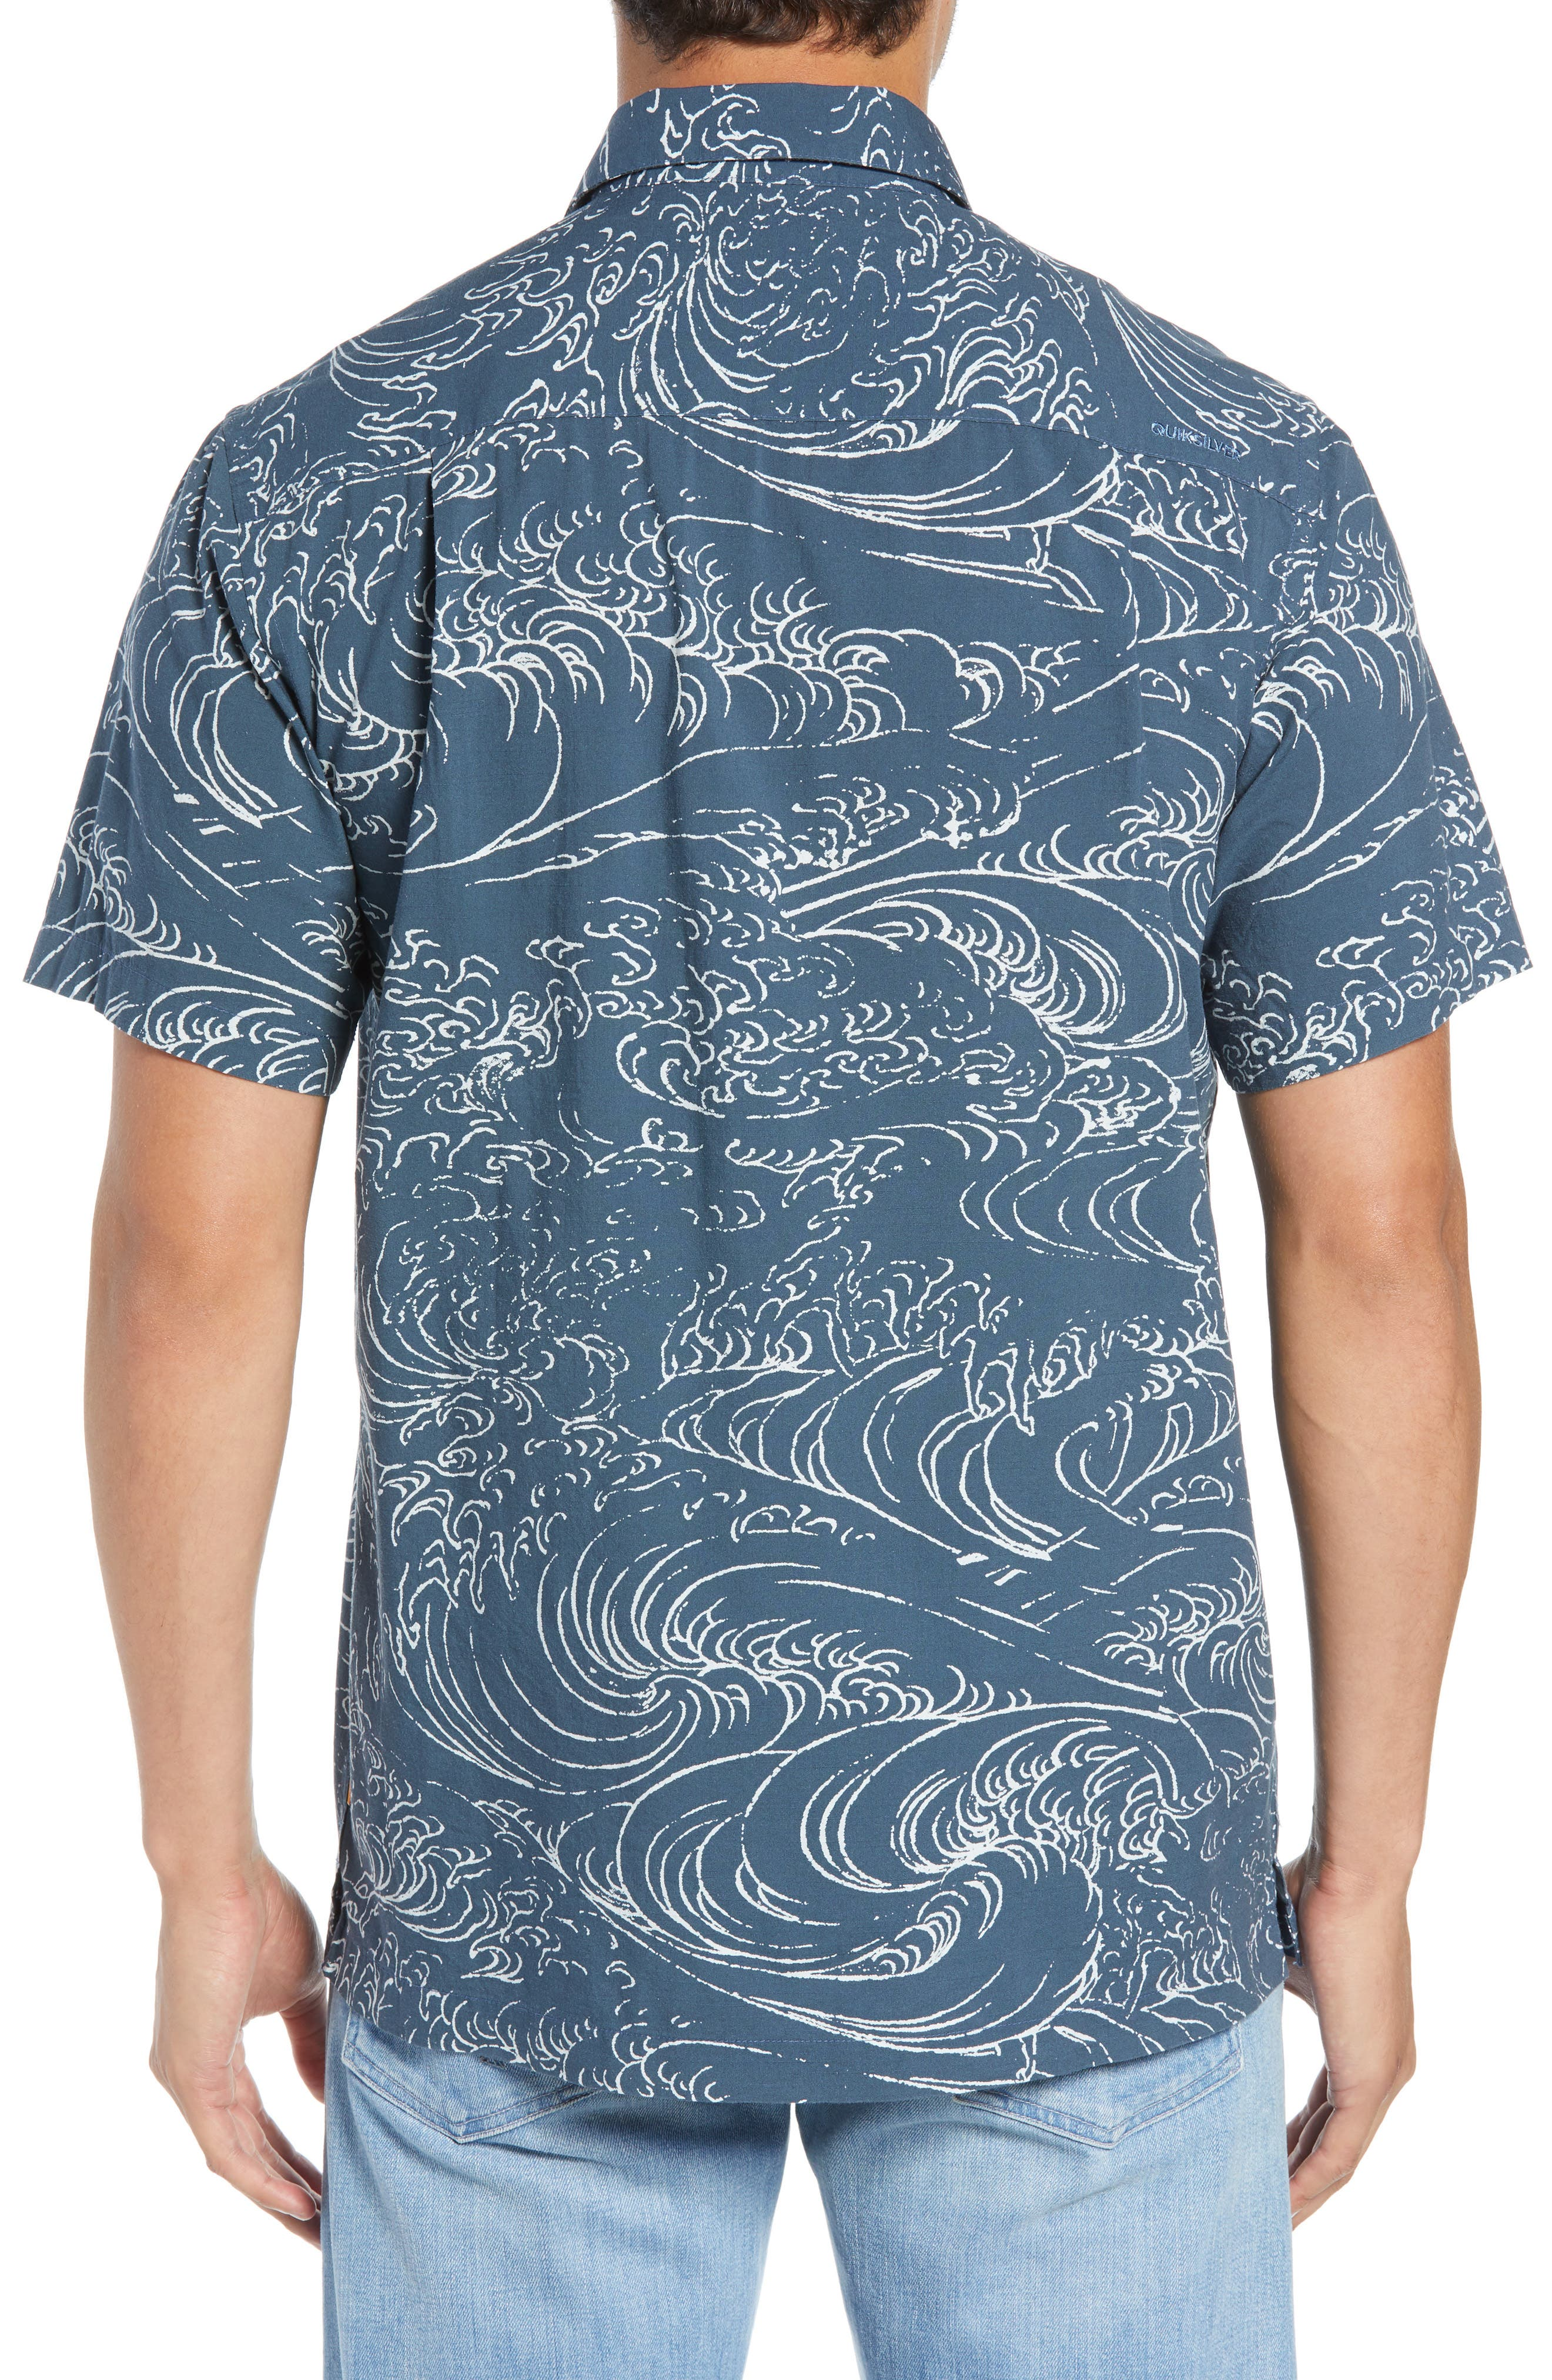 Wind & Waves Regular Fit Sport Shirt,                             Alternate thumbnail 3, color,                             400